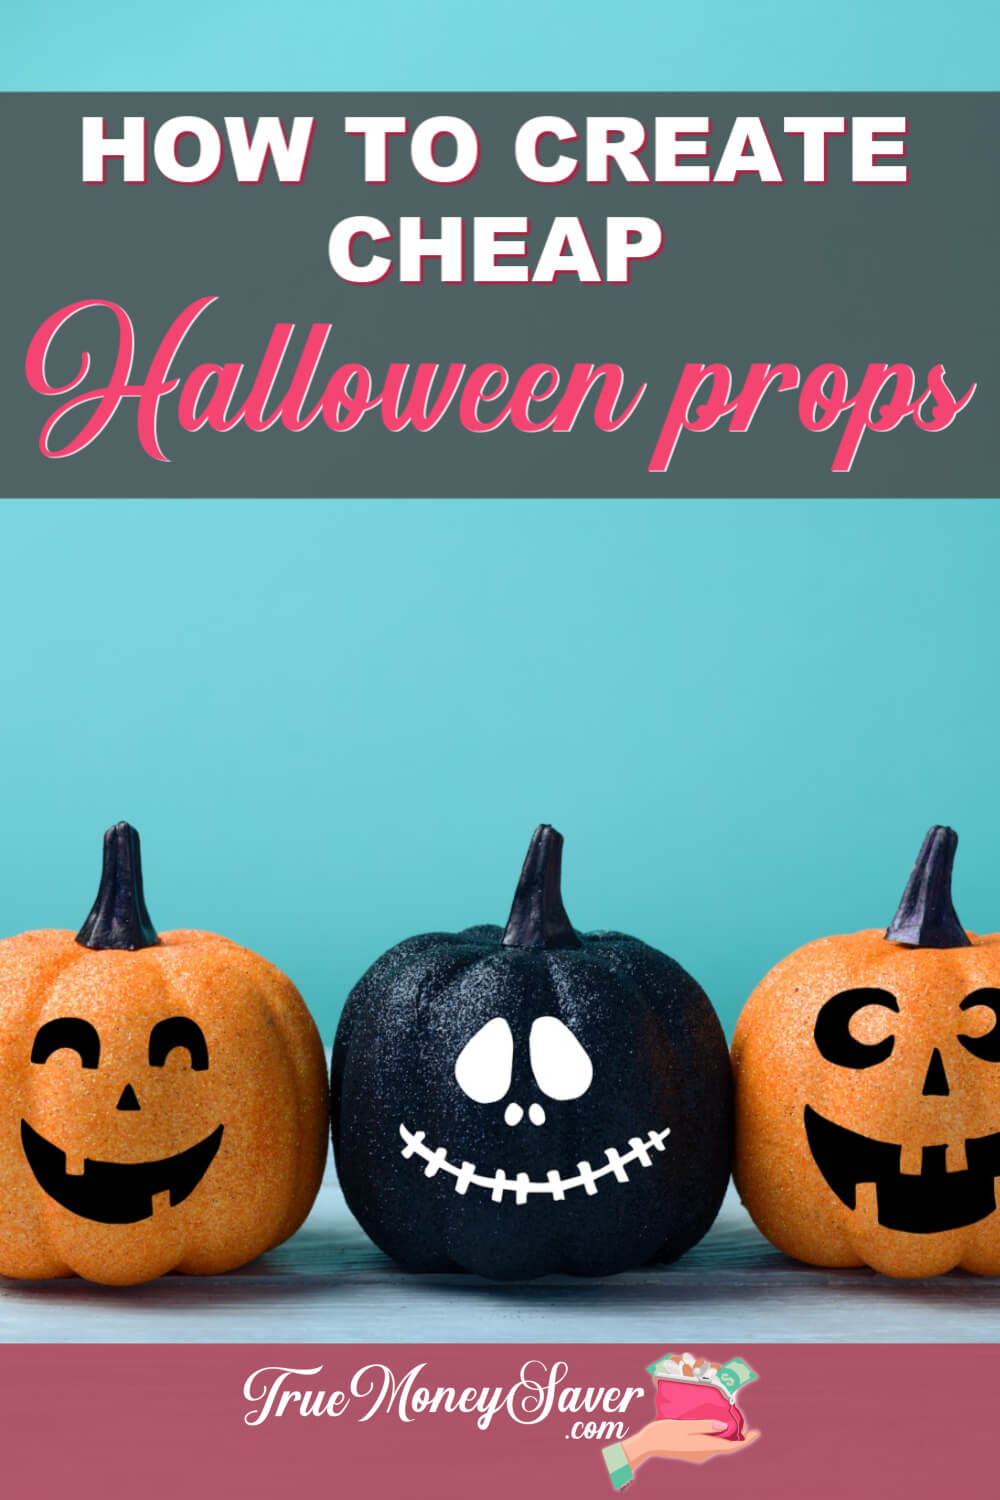 Decorating for Halloween can cost a fortune. Save some money by making your own cheap Halloween props! Here are 6 ideas that are easy and affordable! #truecouponing #halloween #halloweendecor #halloweendecorations #halloweeprops